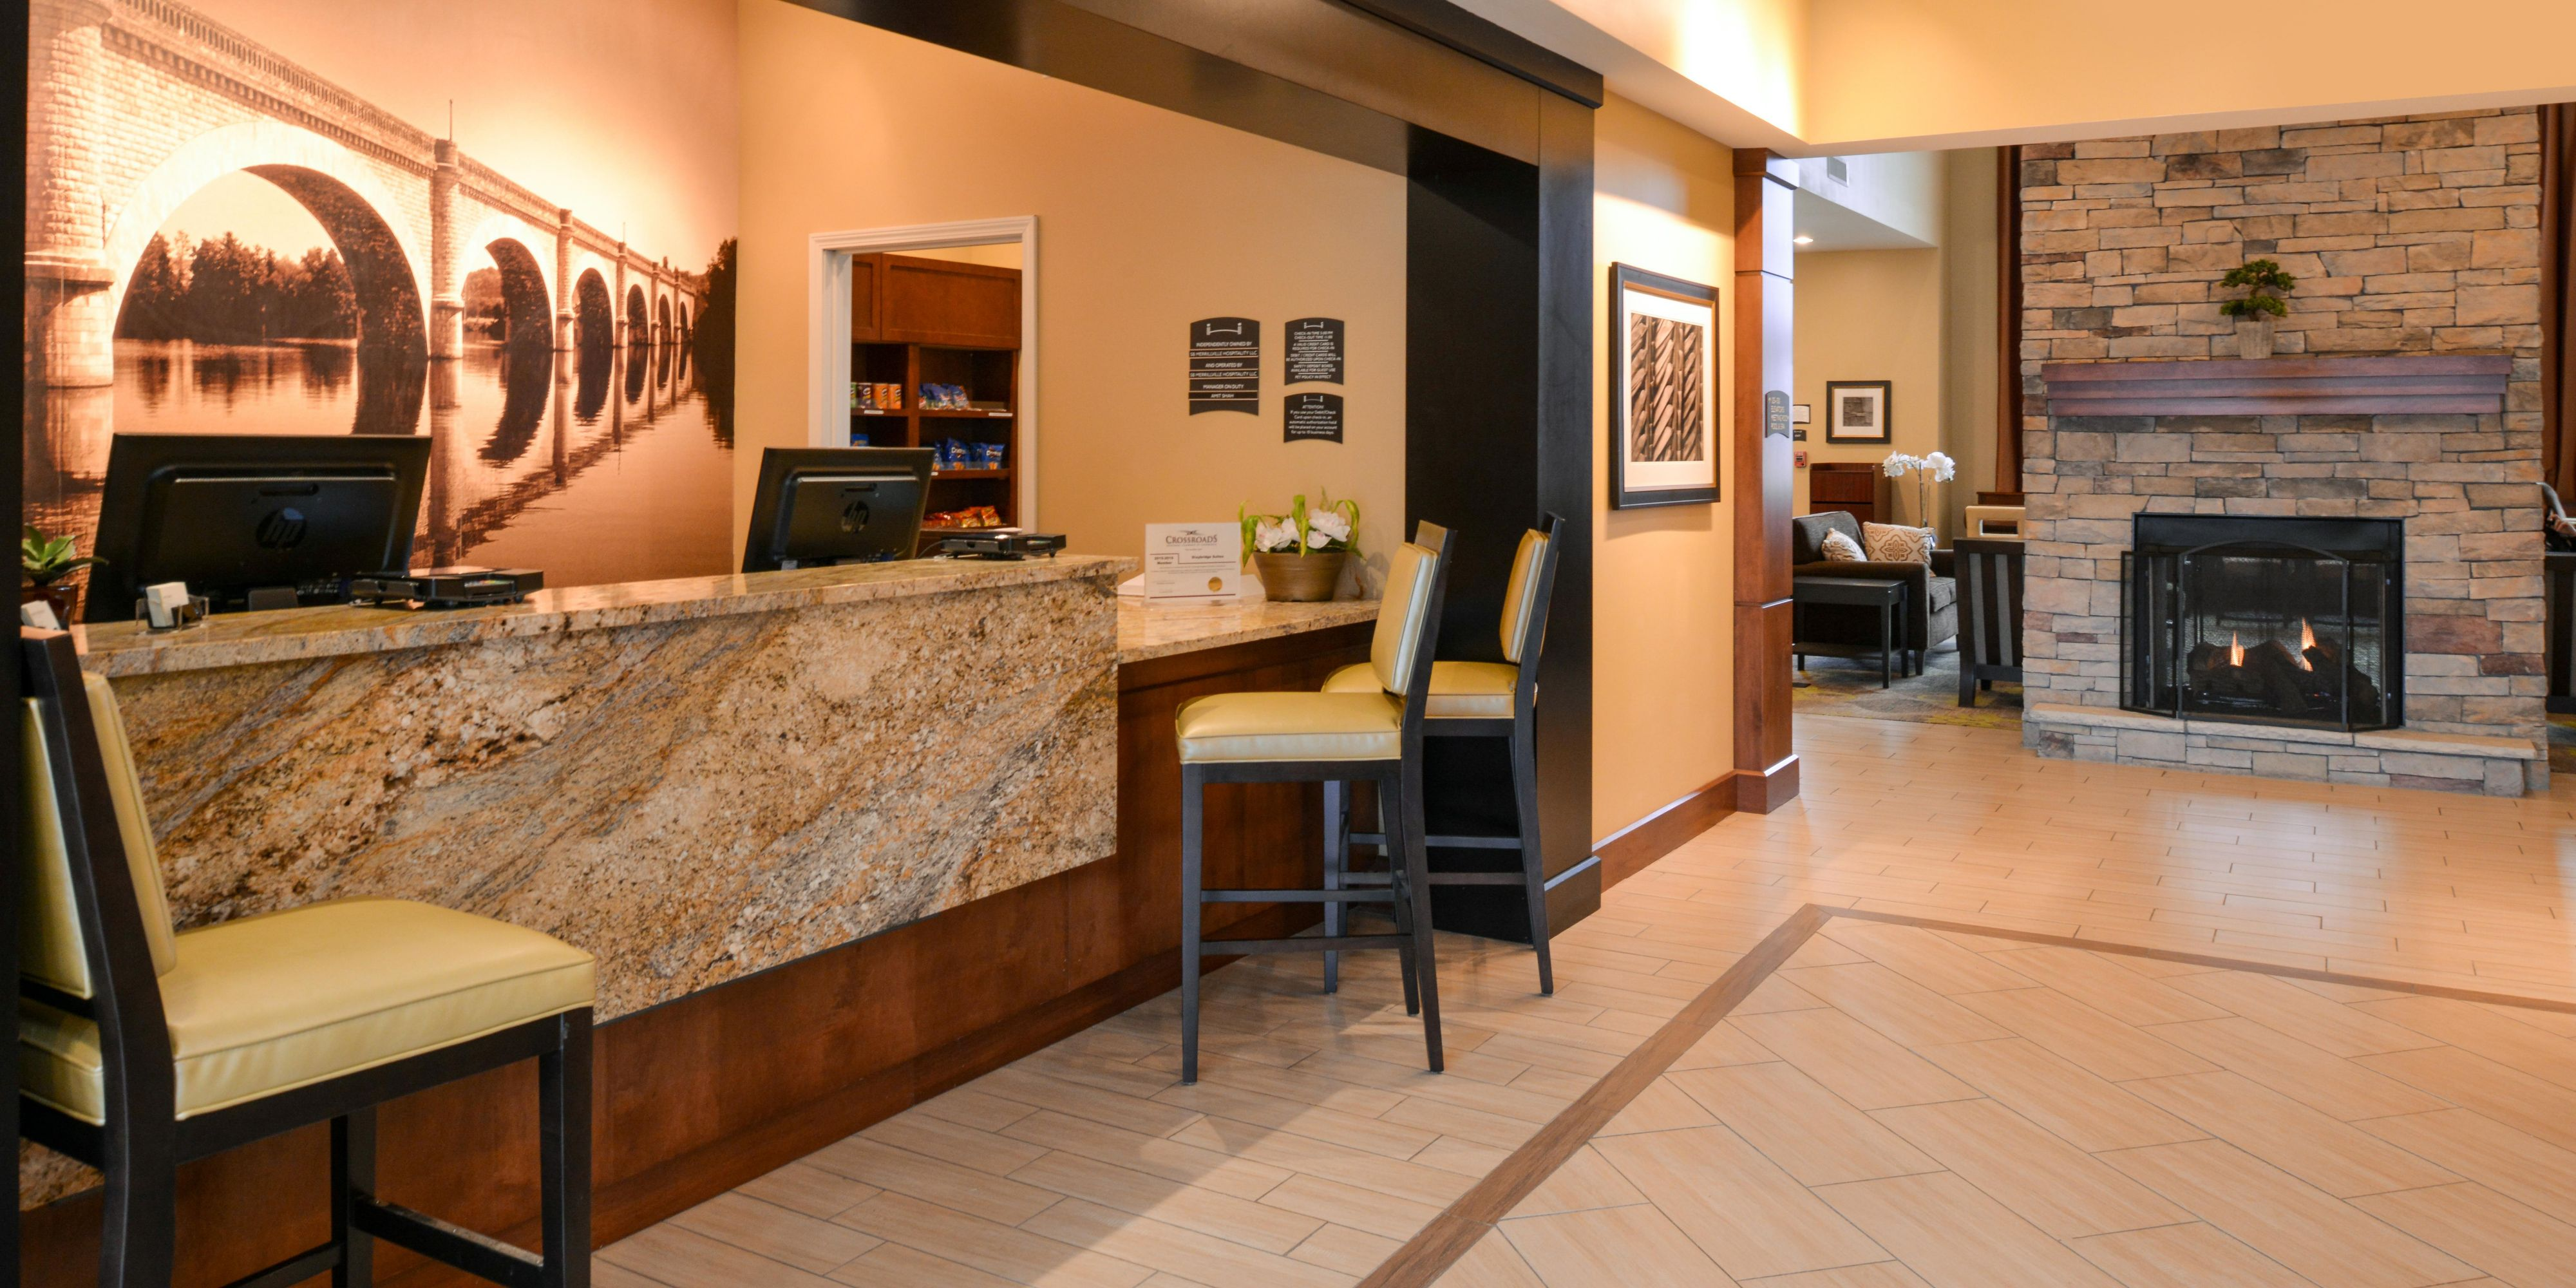 Hotel Exterior Staybridge Merrillville Grand Entrance Lobby